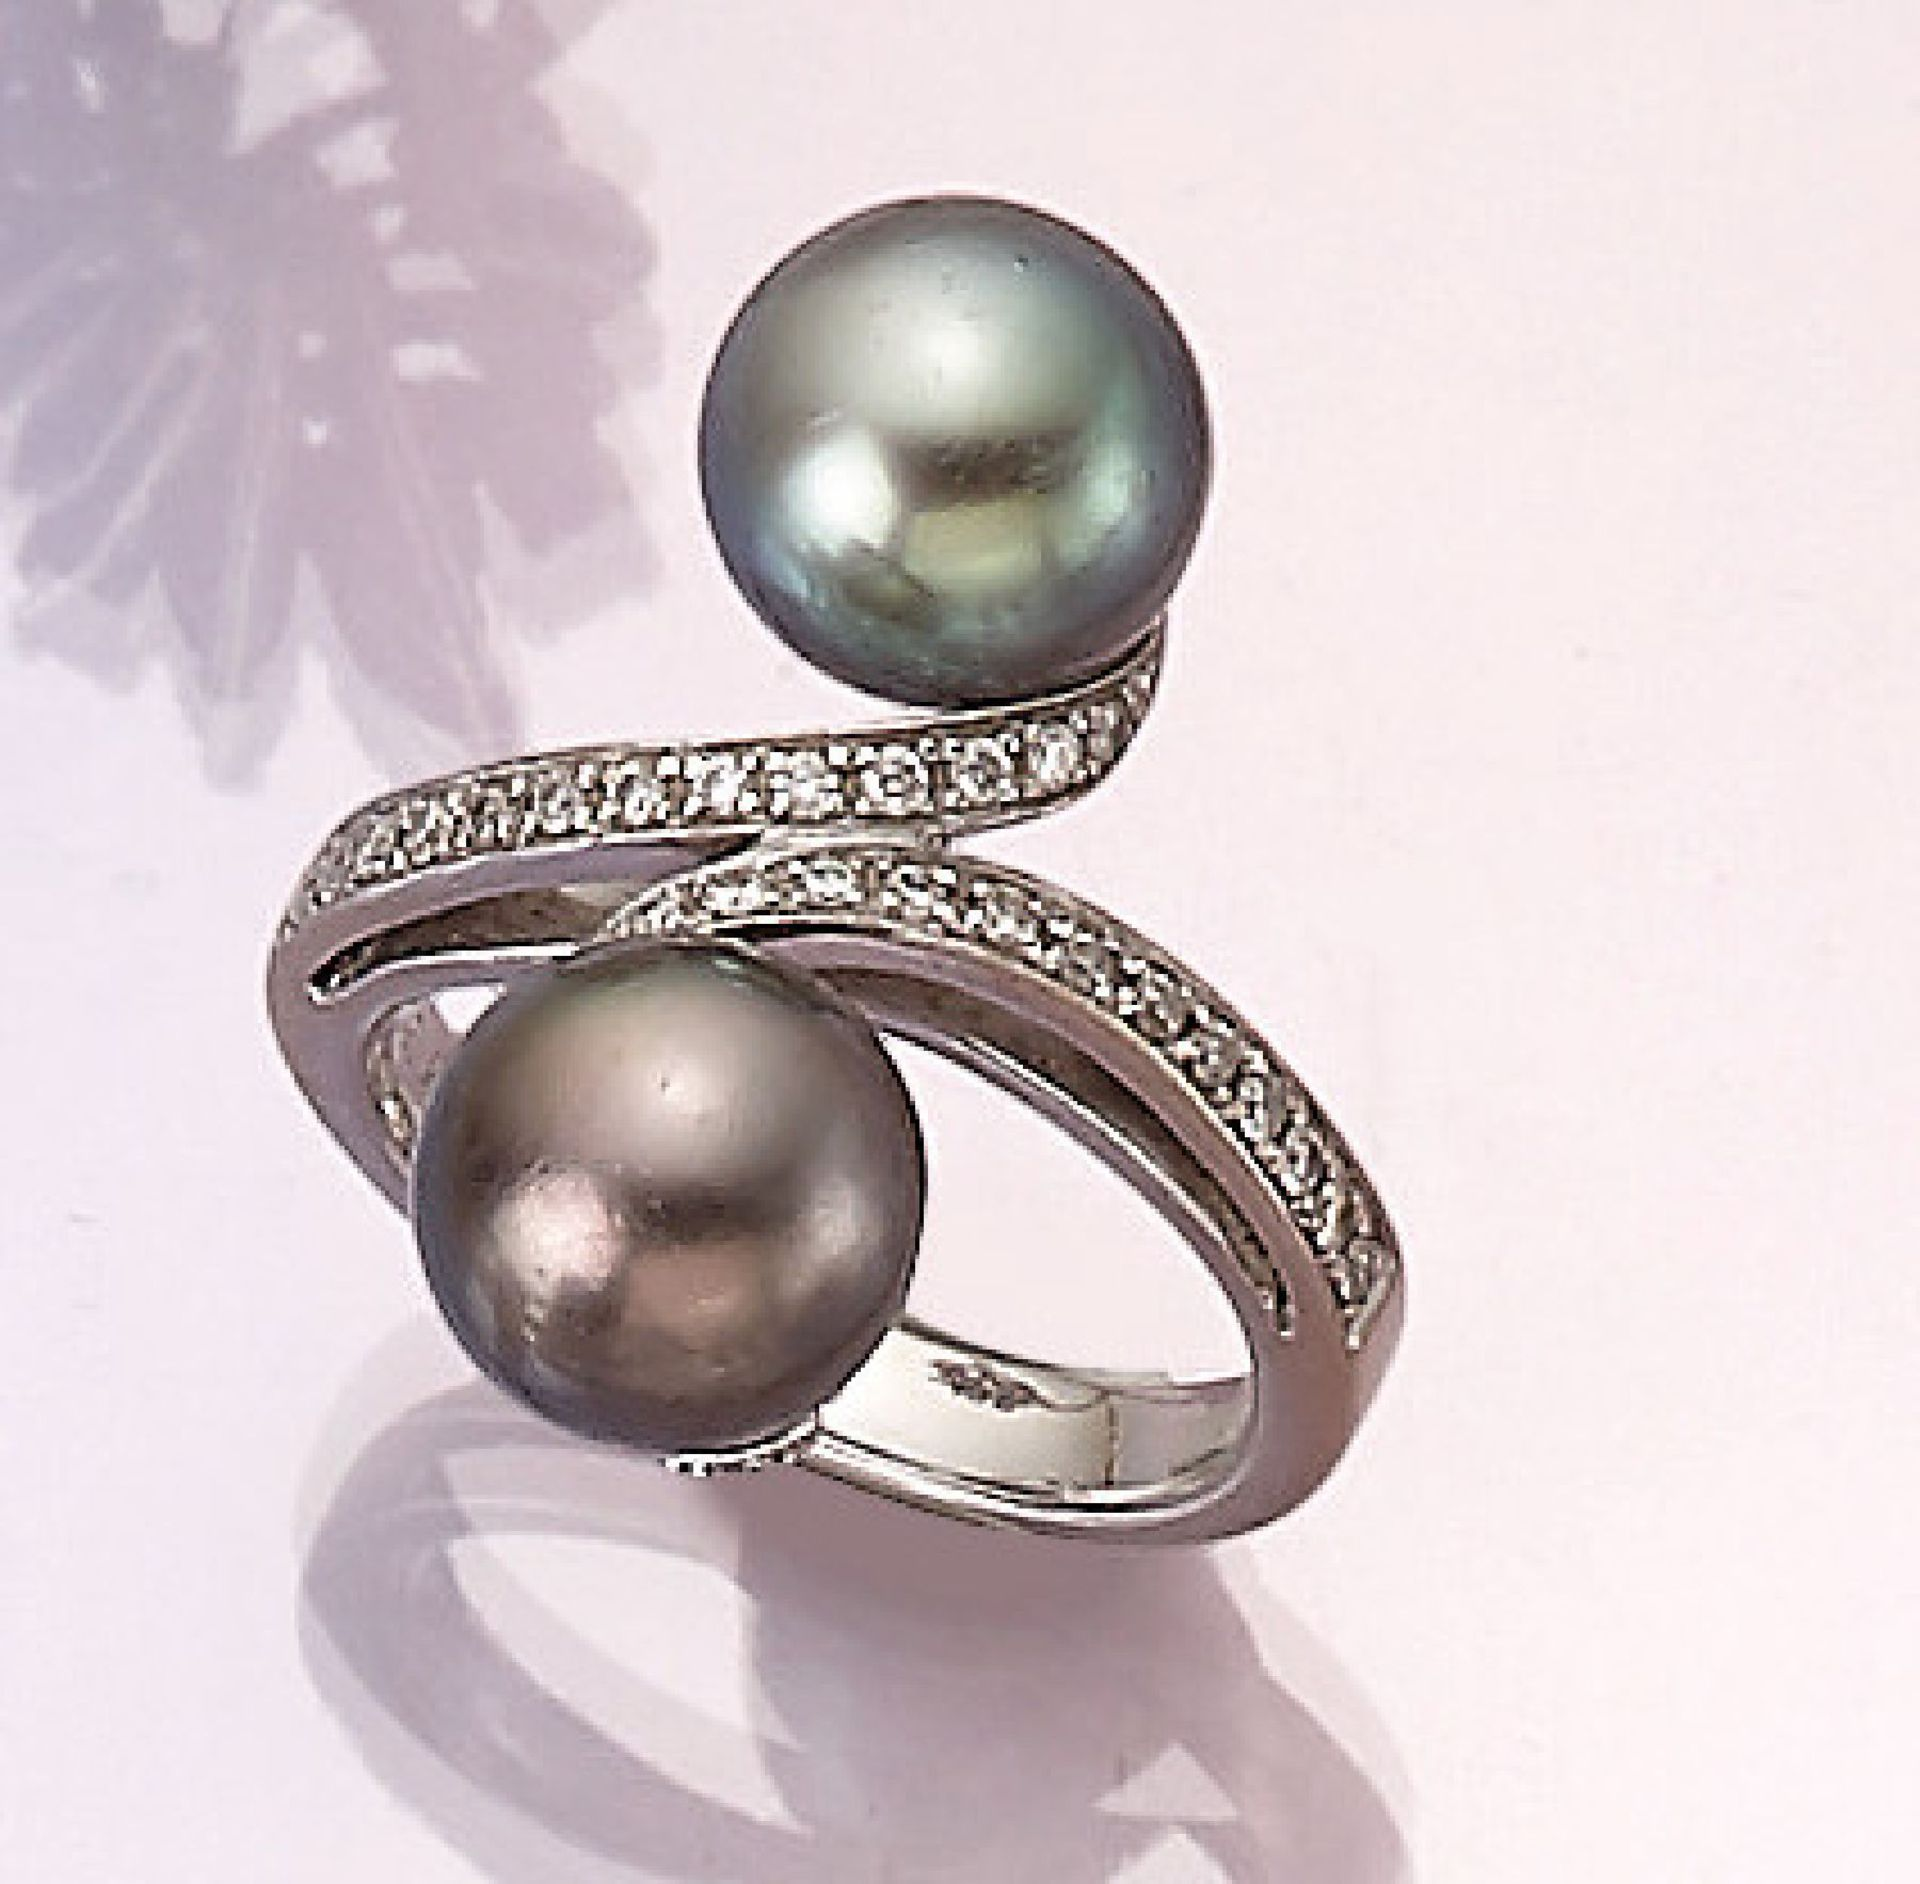 Los 31551 - 18 kt gold ring with cultured tahitian pearls and diamonds , WG 750/000, asymm. splint with 2